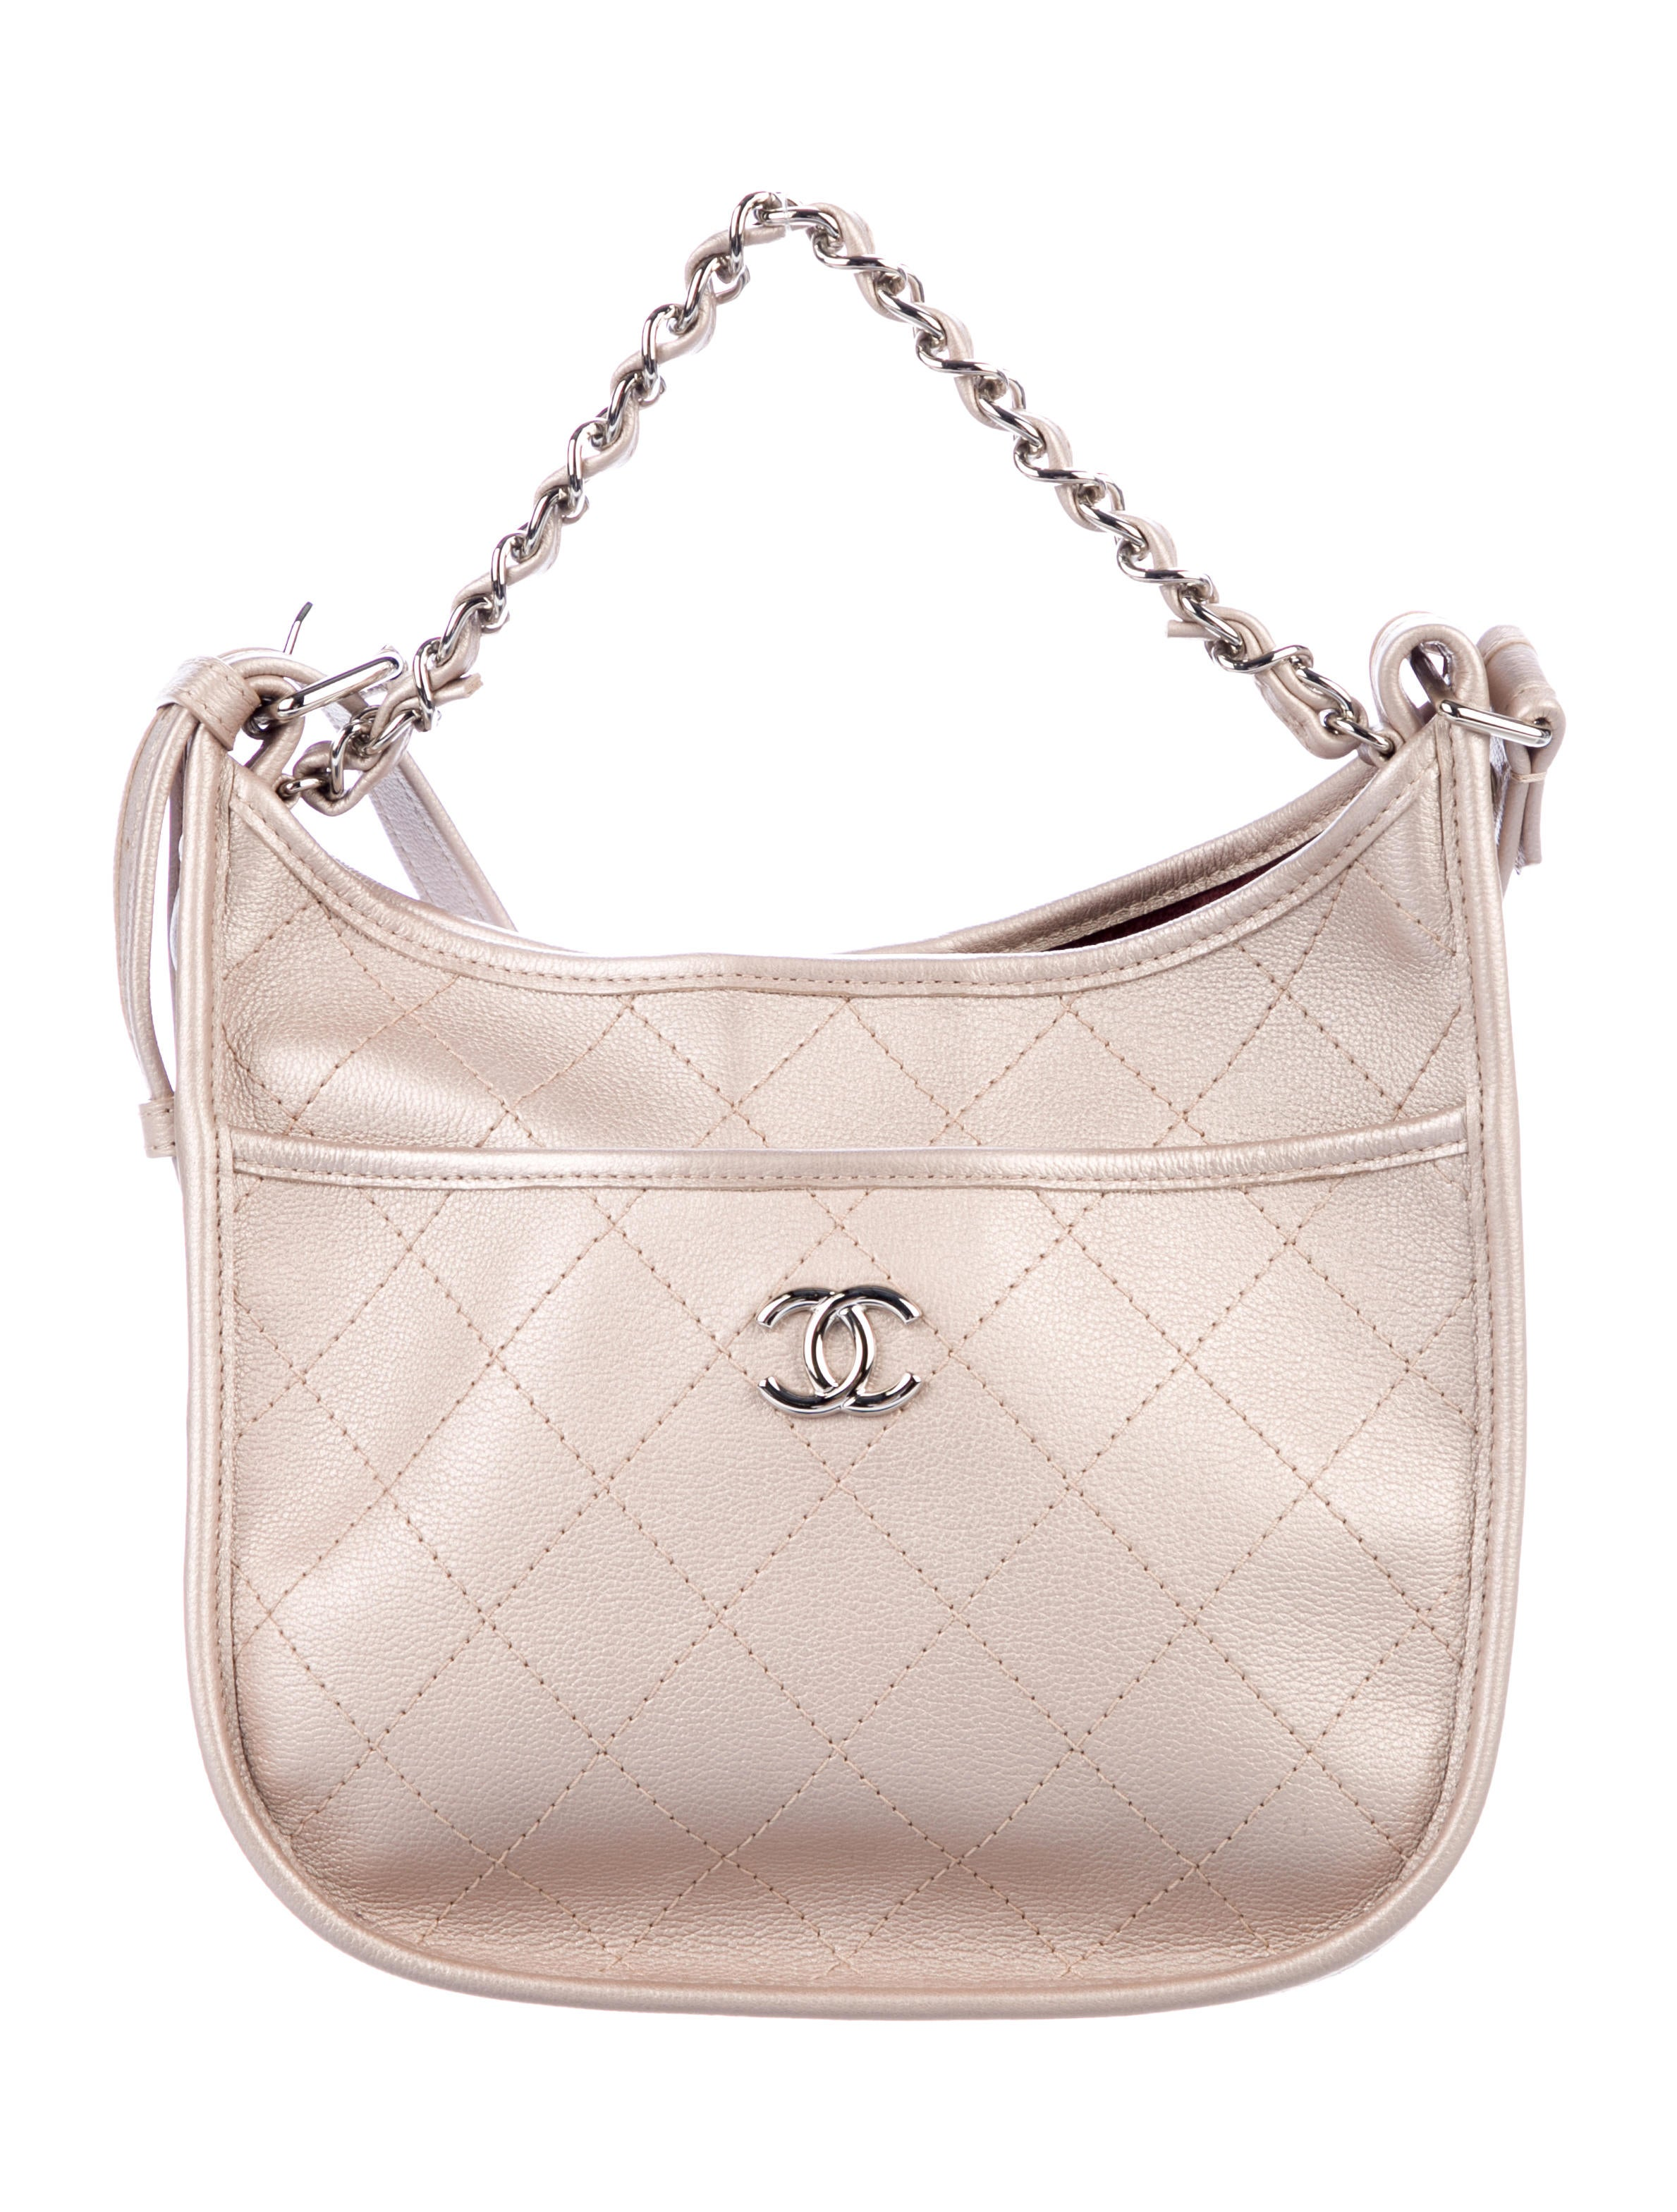 af3a5d047ce4 Chanel Small Jungle Stroll - Handbags - CHA276127 | The RealReal